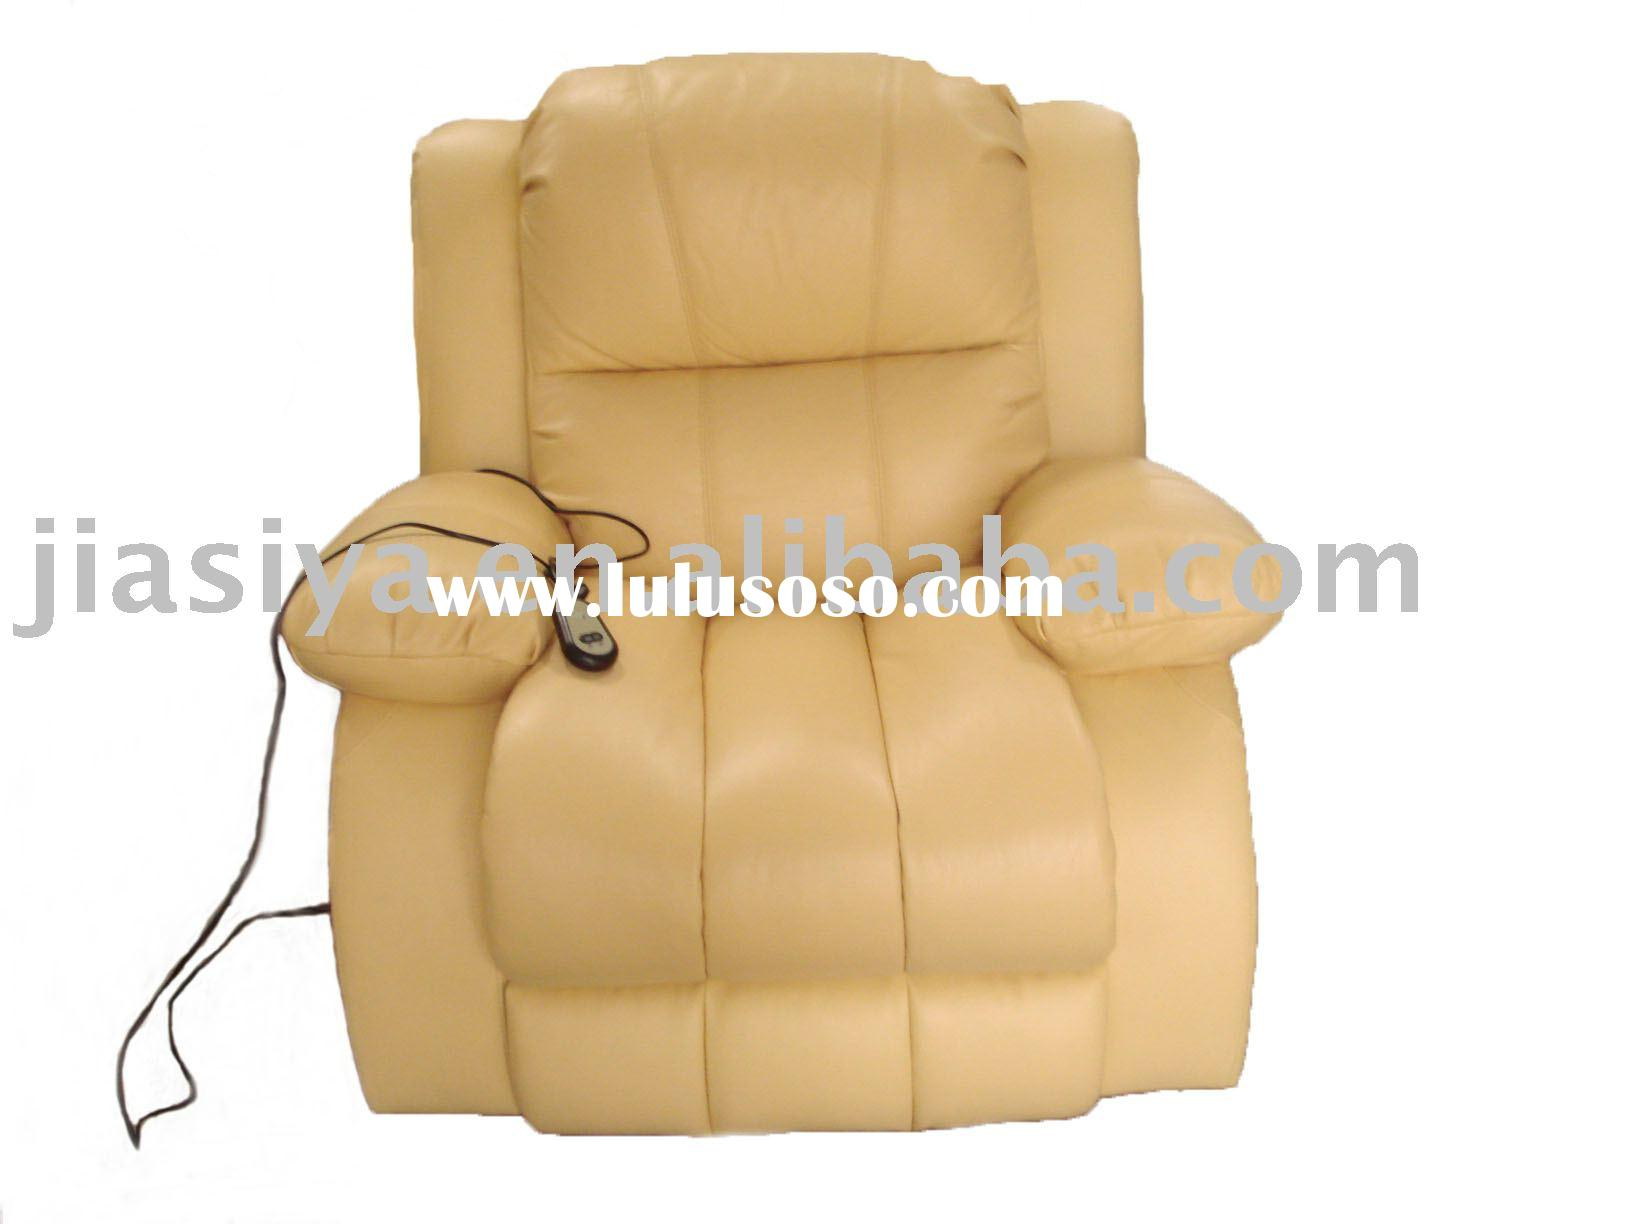 swivel chair price philippines big man recliner chairs 2011 electronic g313 for sale china